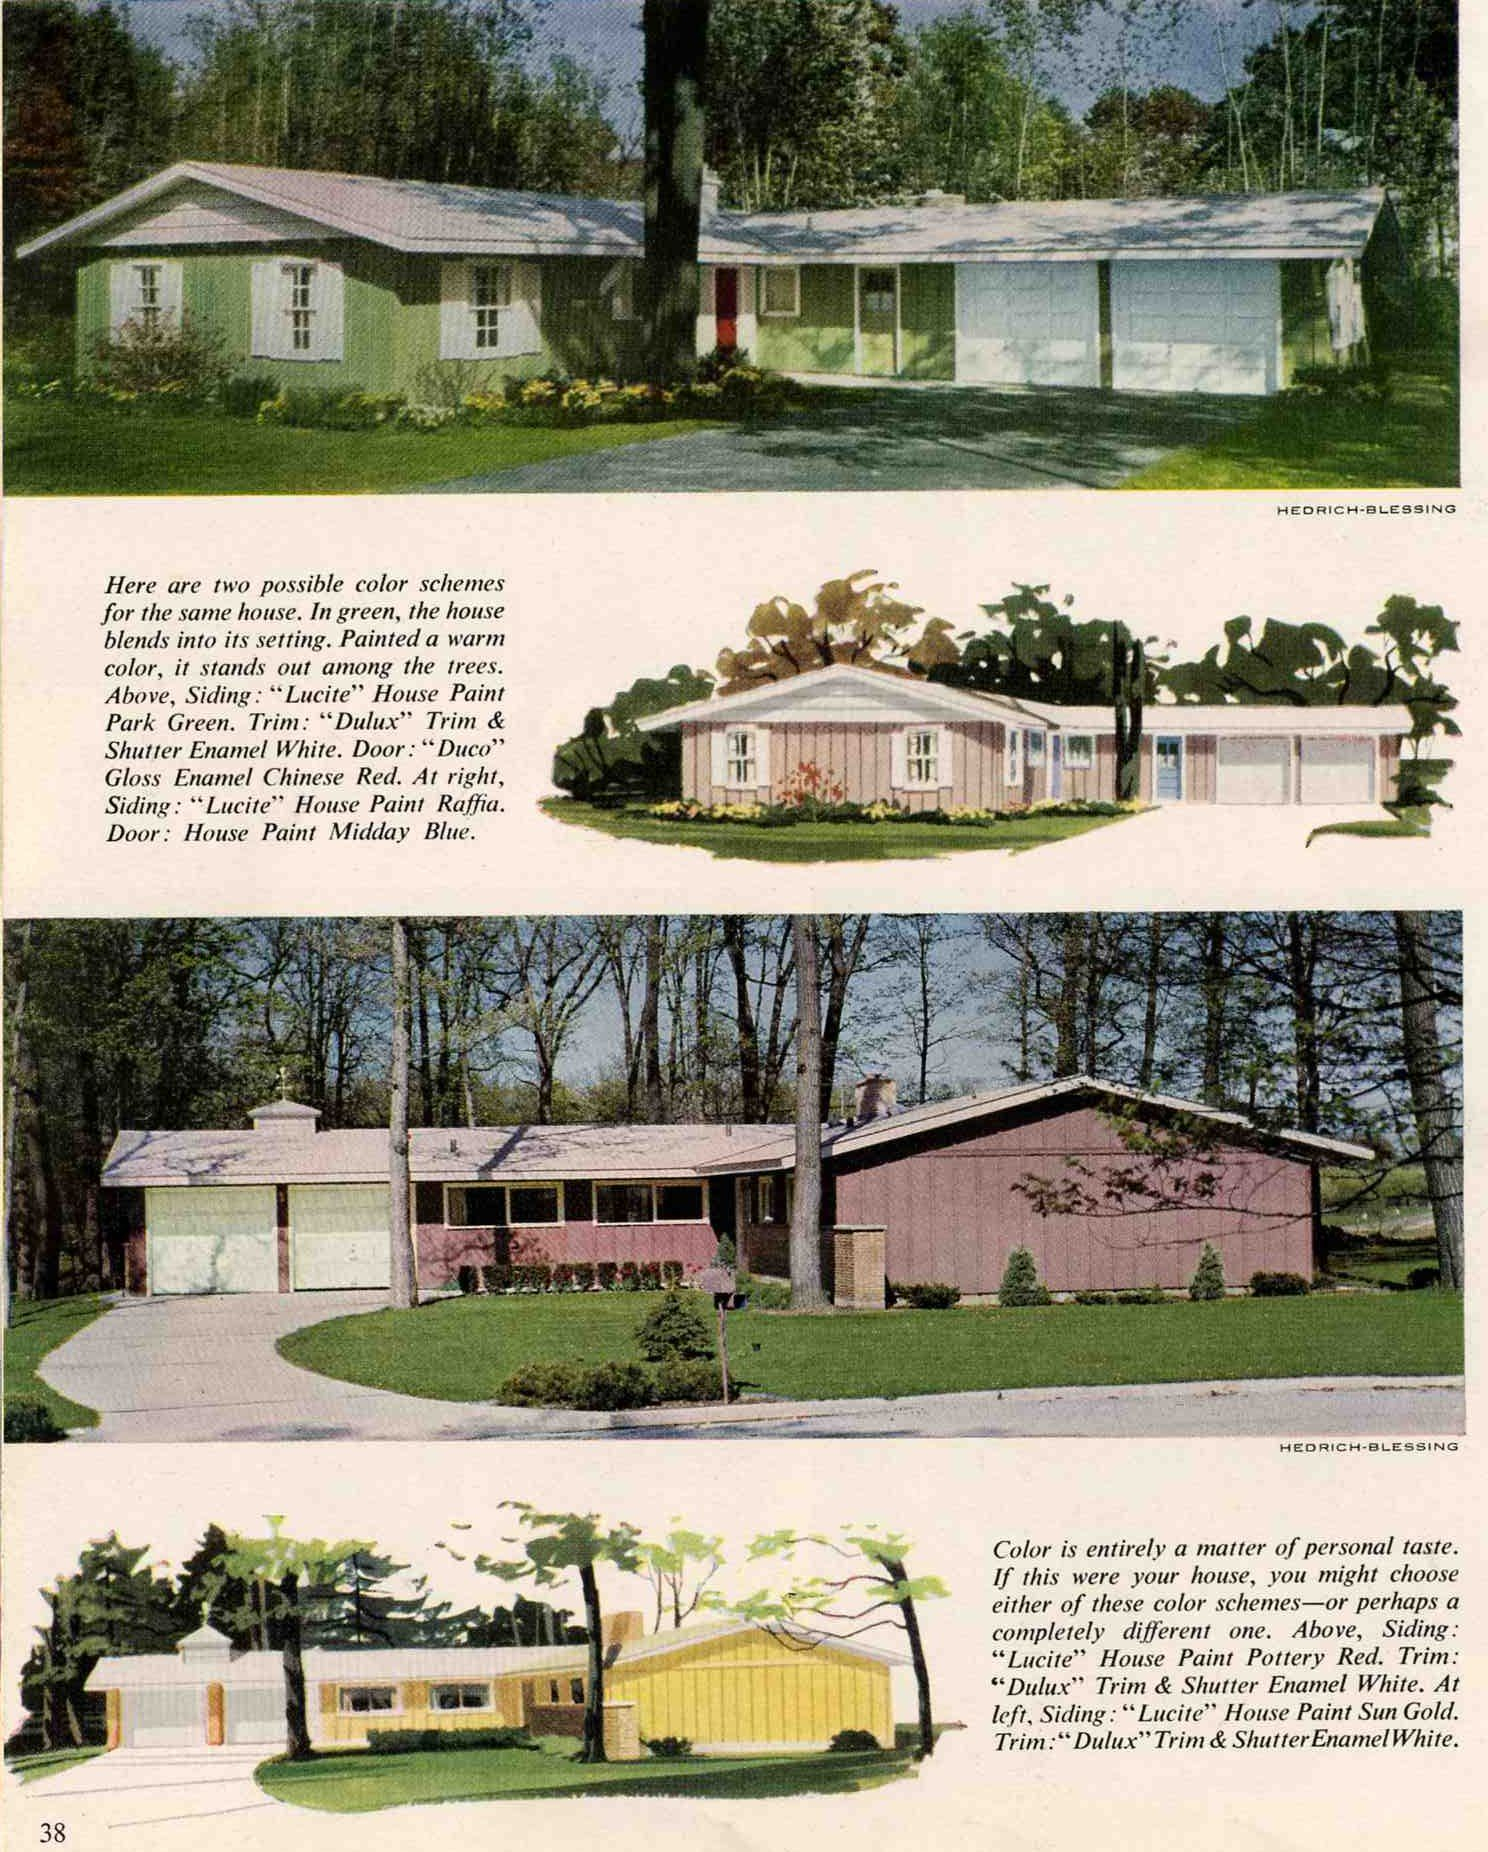 Exterior colors for 1960 houses | Retro renovation, Exterior ...